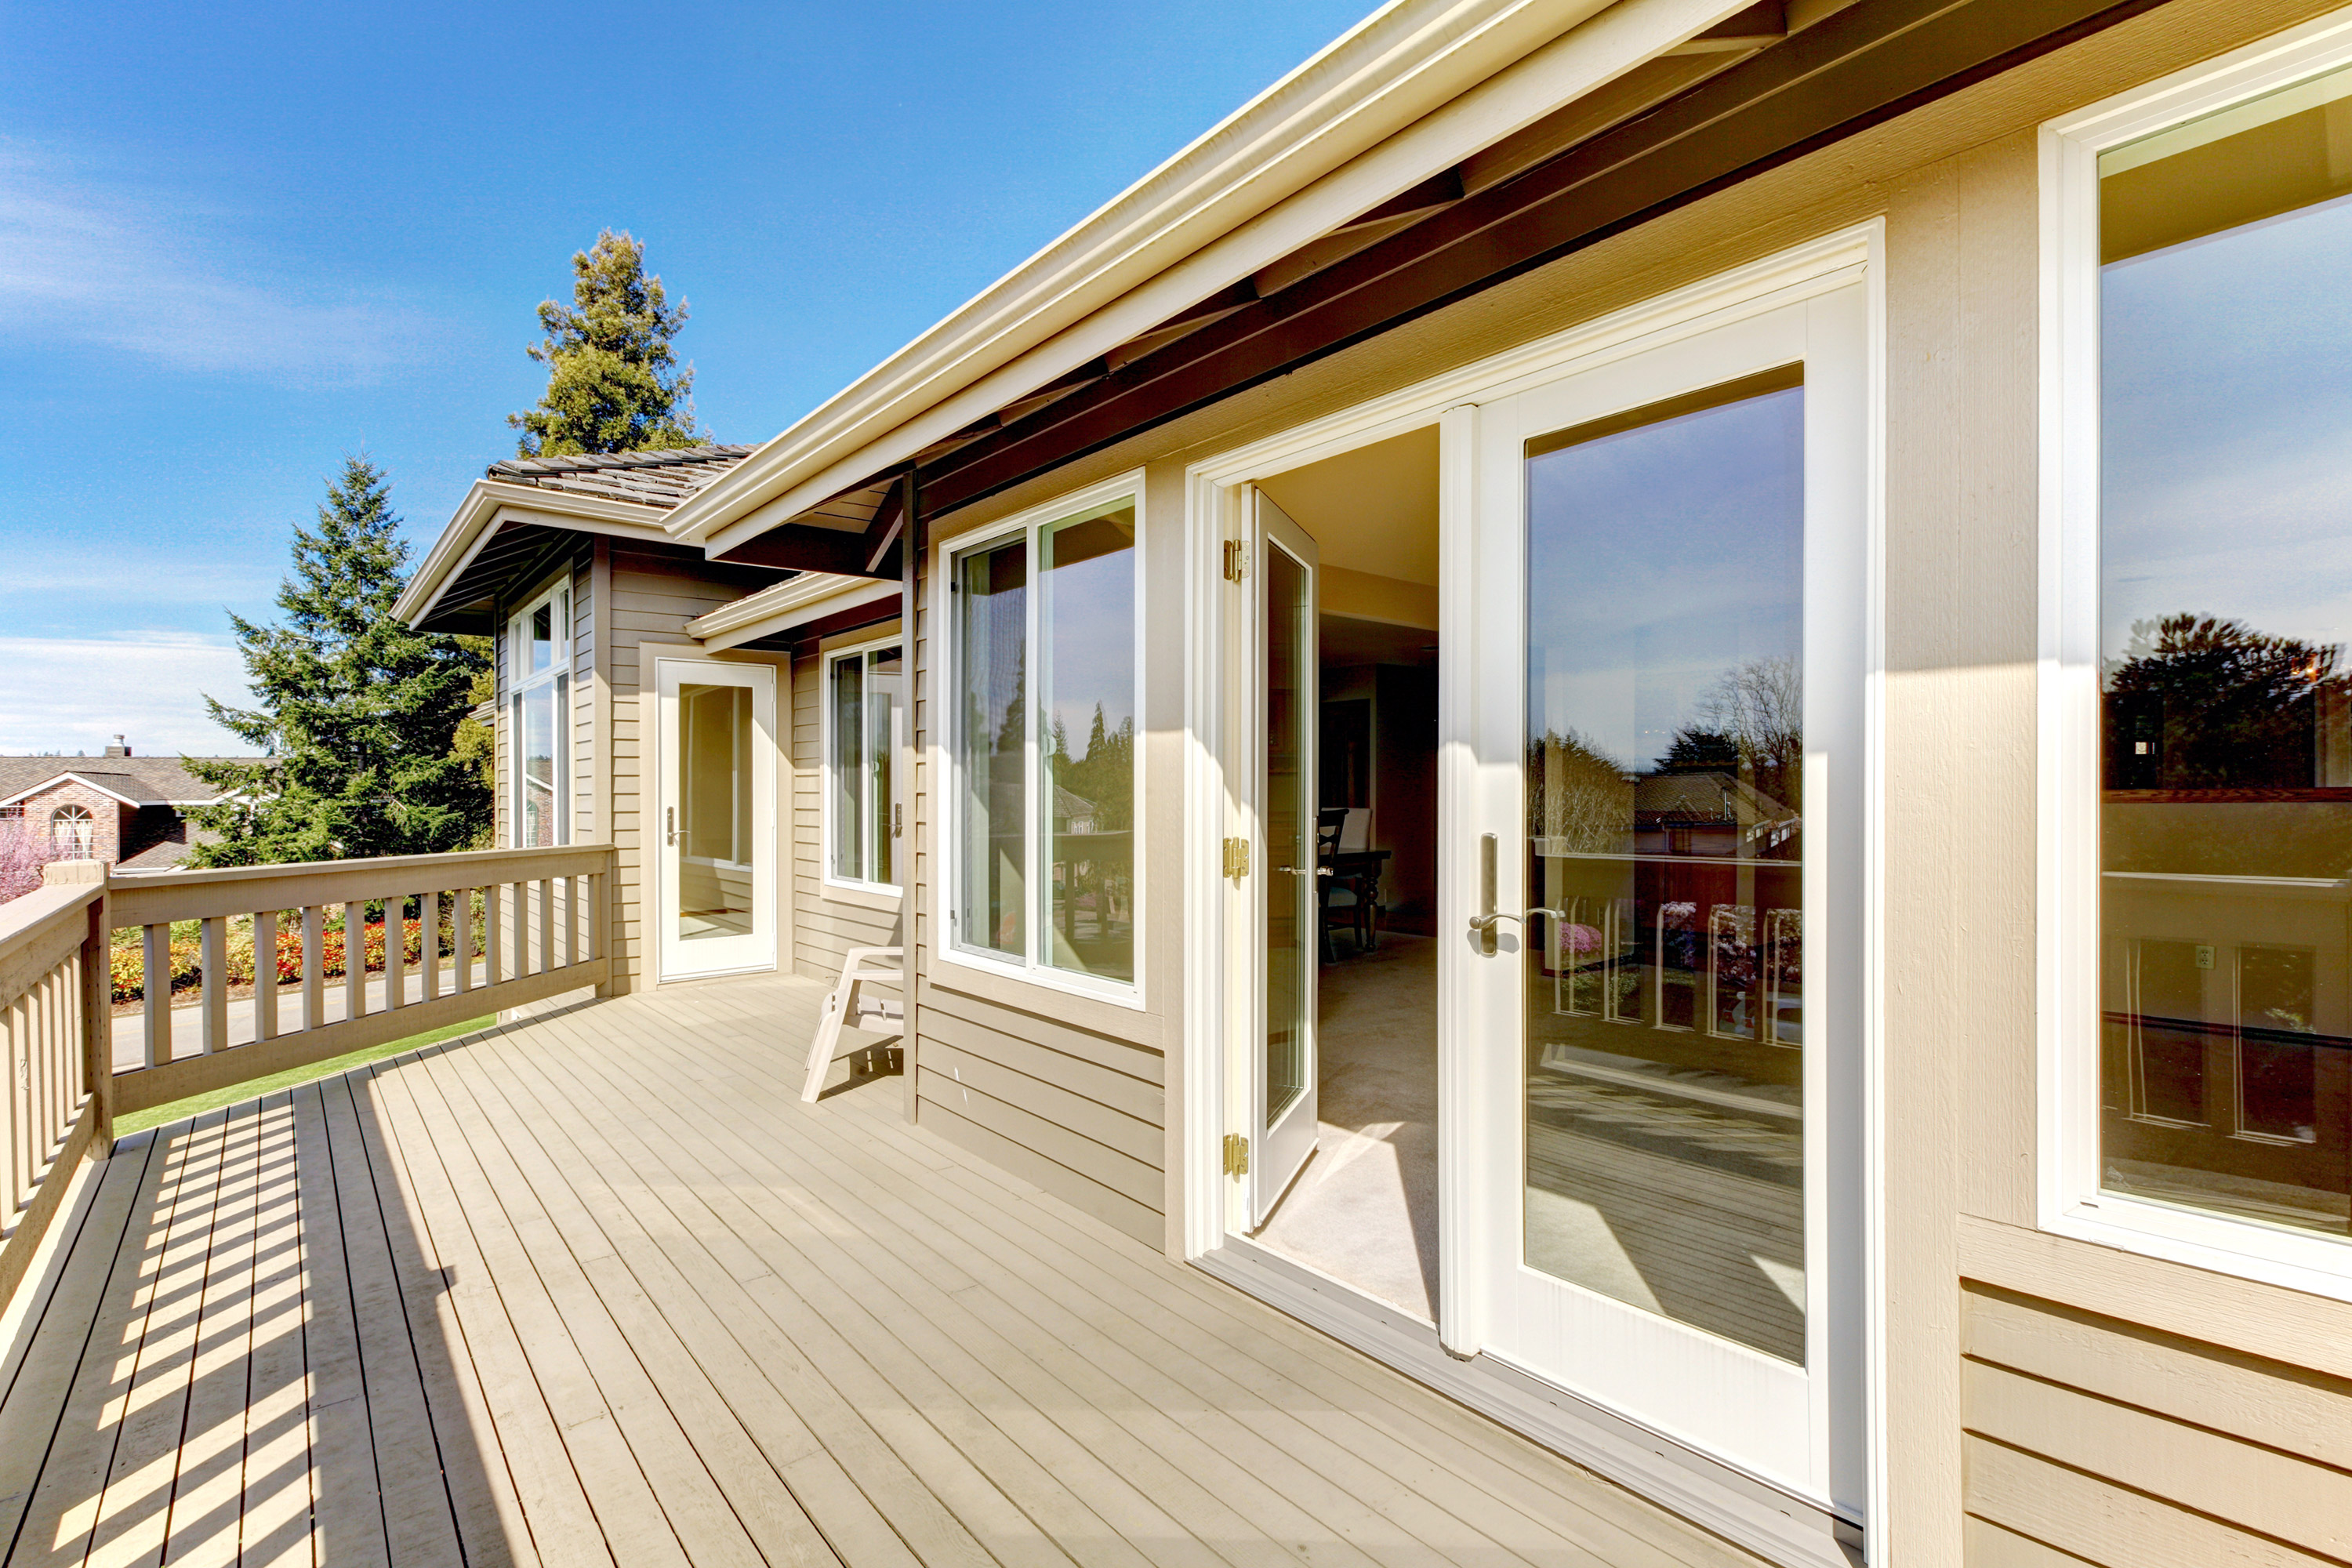 Energy Efficient Windows | Hometown Exterior Designs - Portland, OR & Vancouver, WA